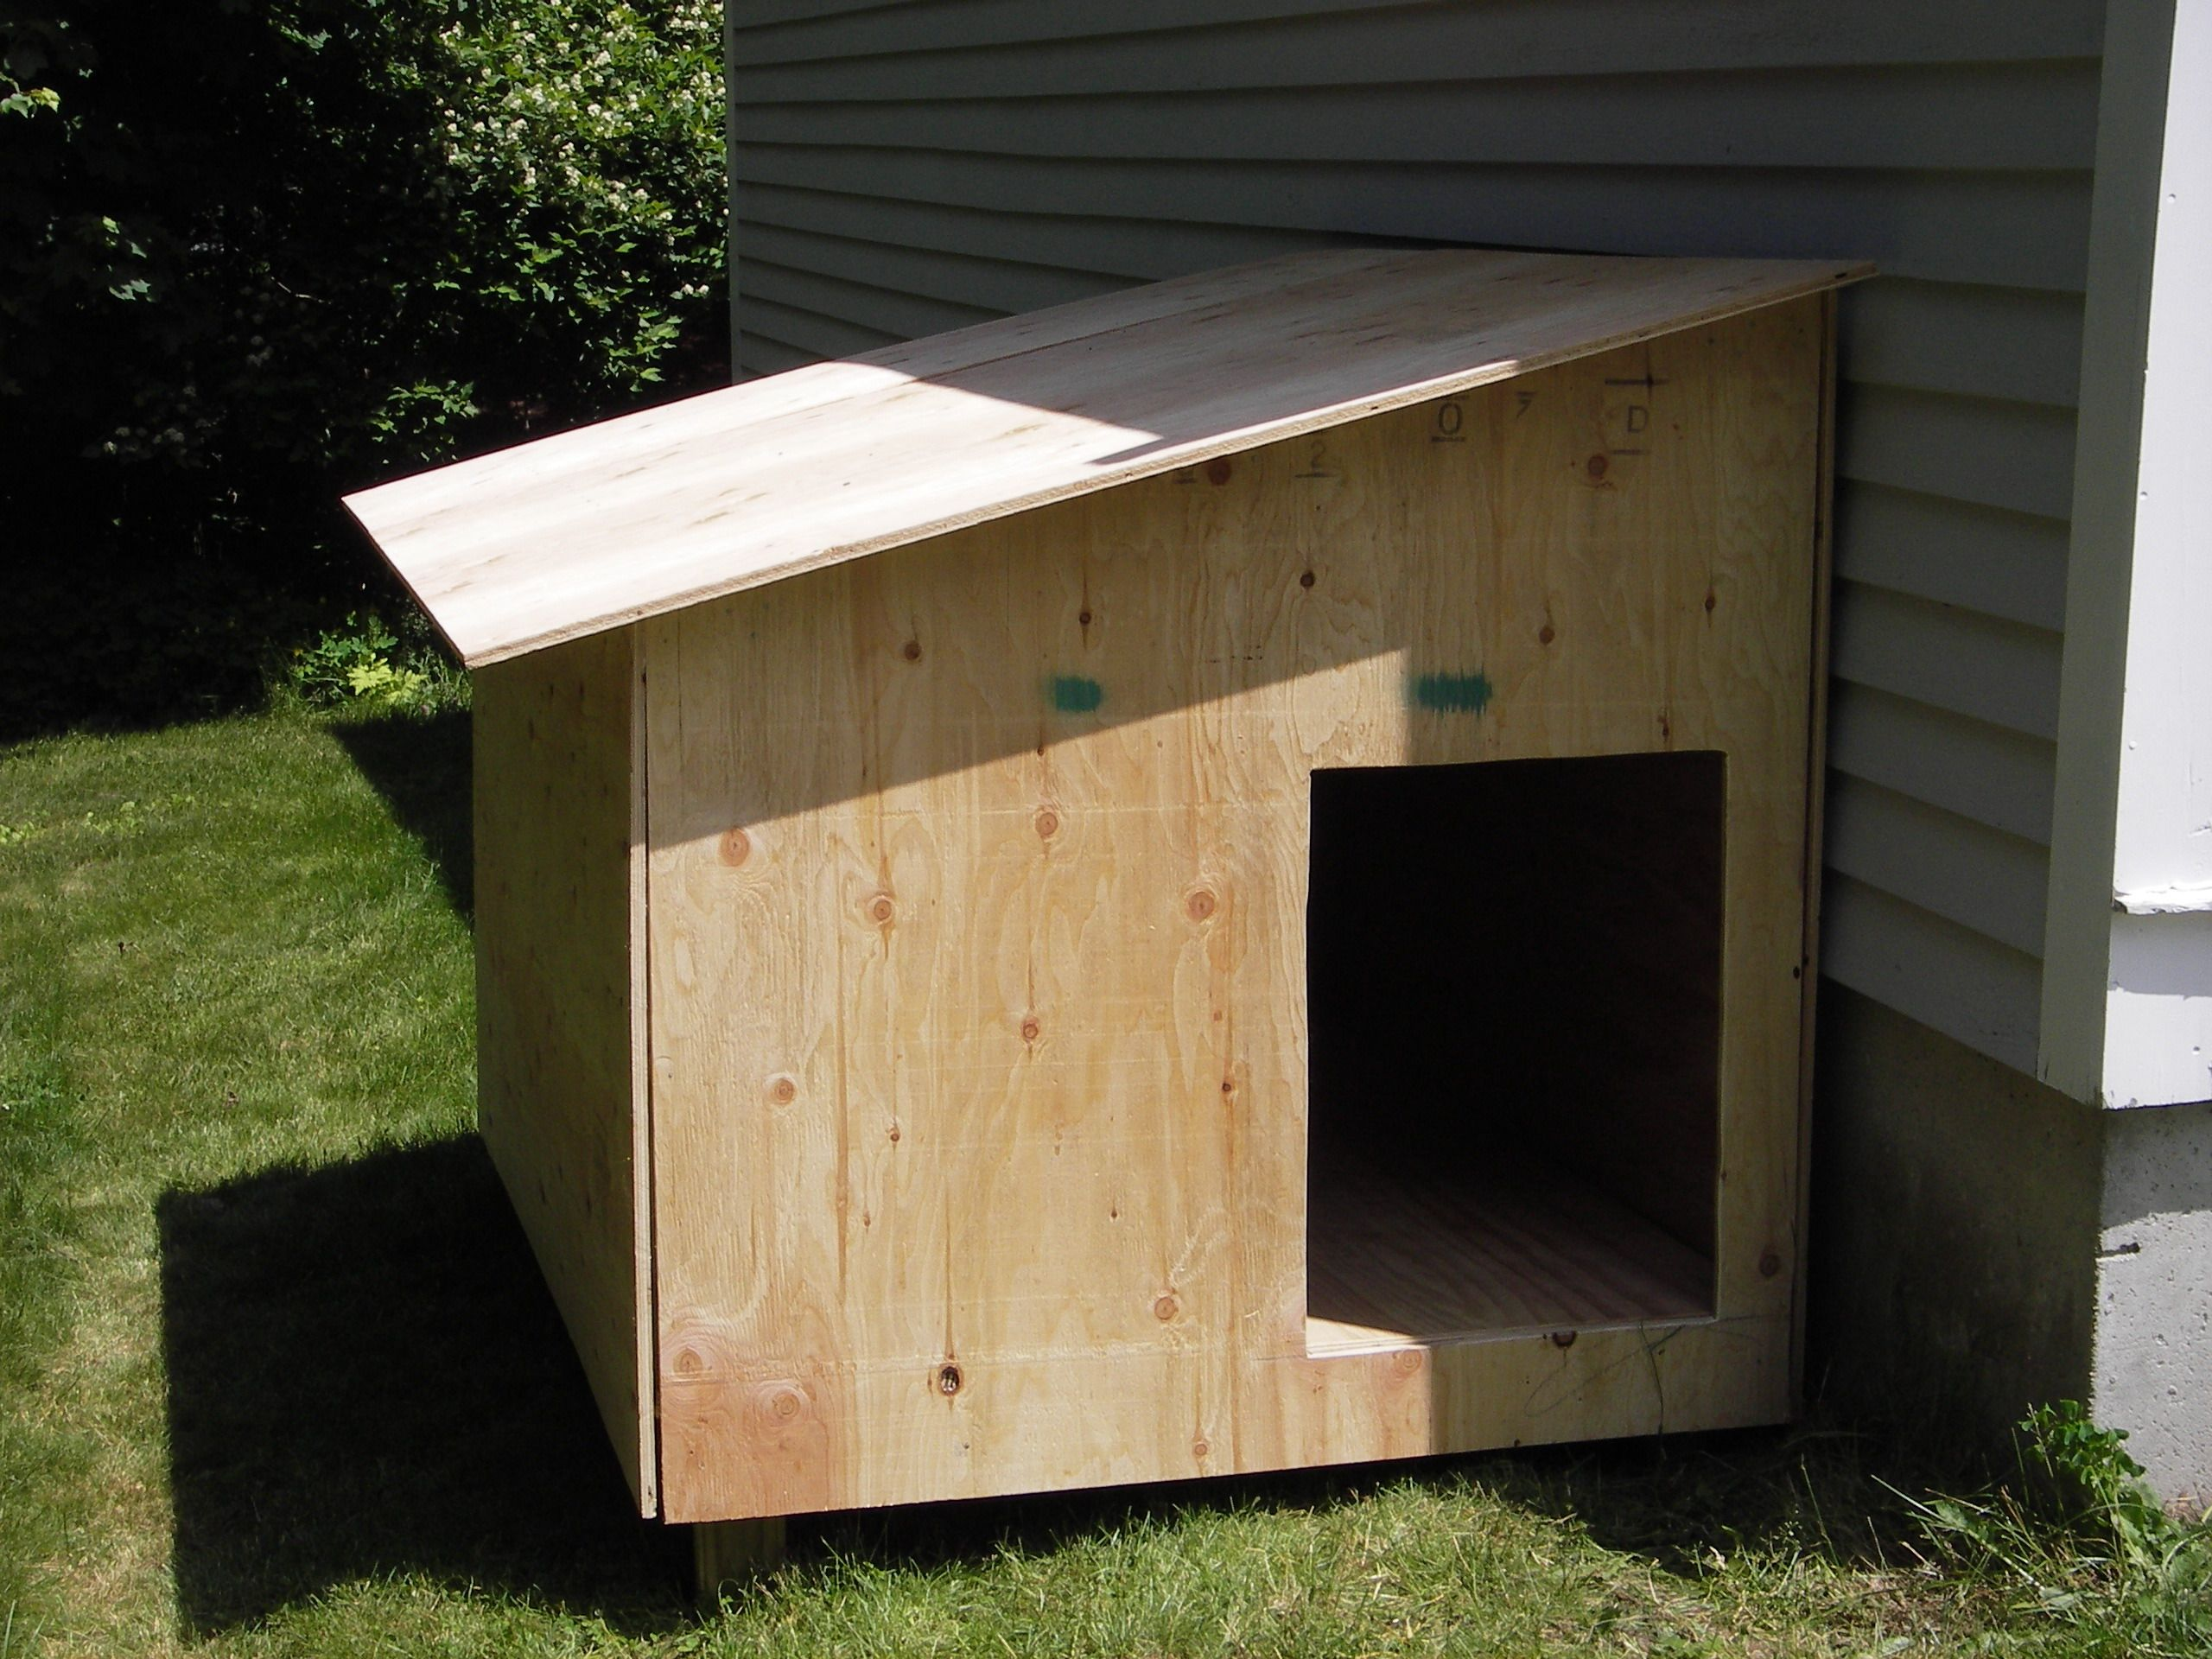 dog house plans | Dog House | The house has gone to the dogs ...